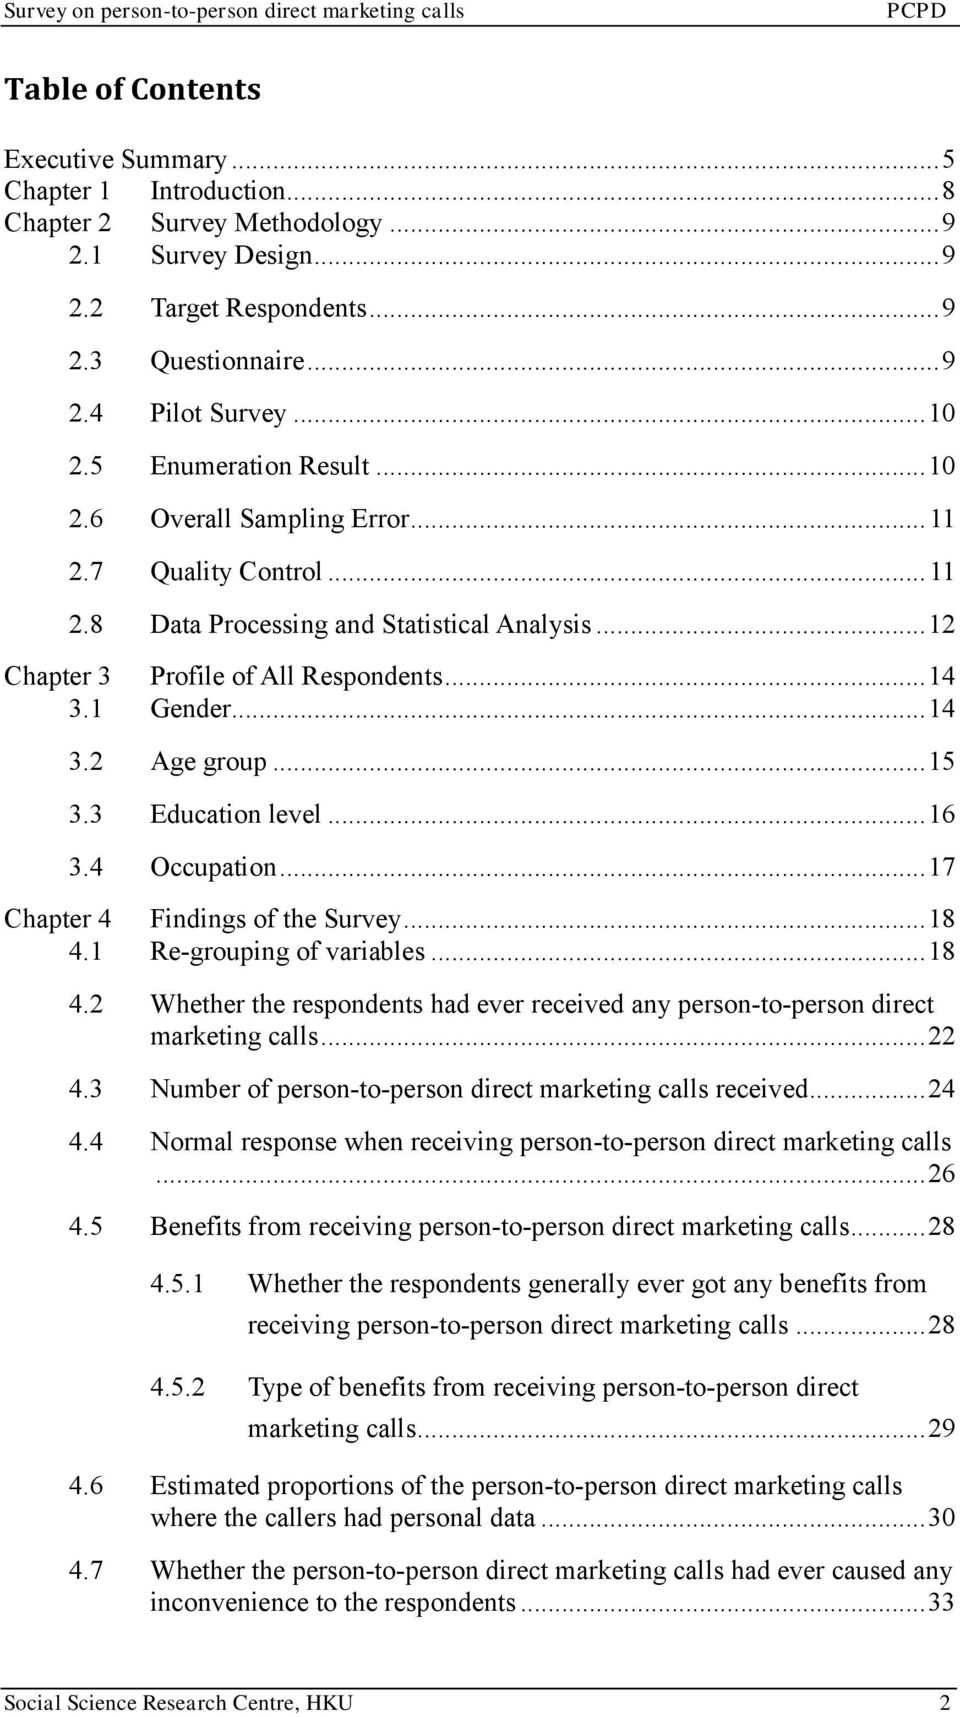 .. 15 3.3 Education level... 16 3.4 Occupation... 17 Chapter 4 Findings of the Survey... 18 4.1 Re-grouping of variables... 18 4.2 Whether the respondents had ever received any person-to-person direct marketing calls.